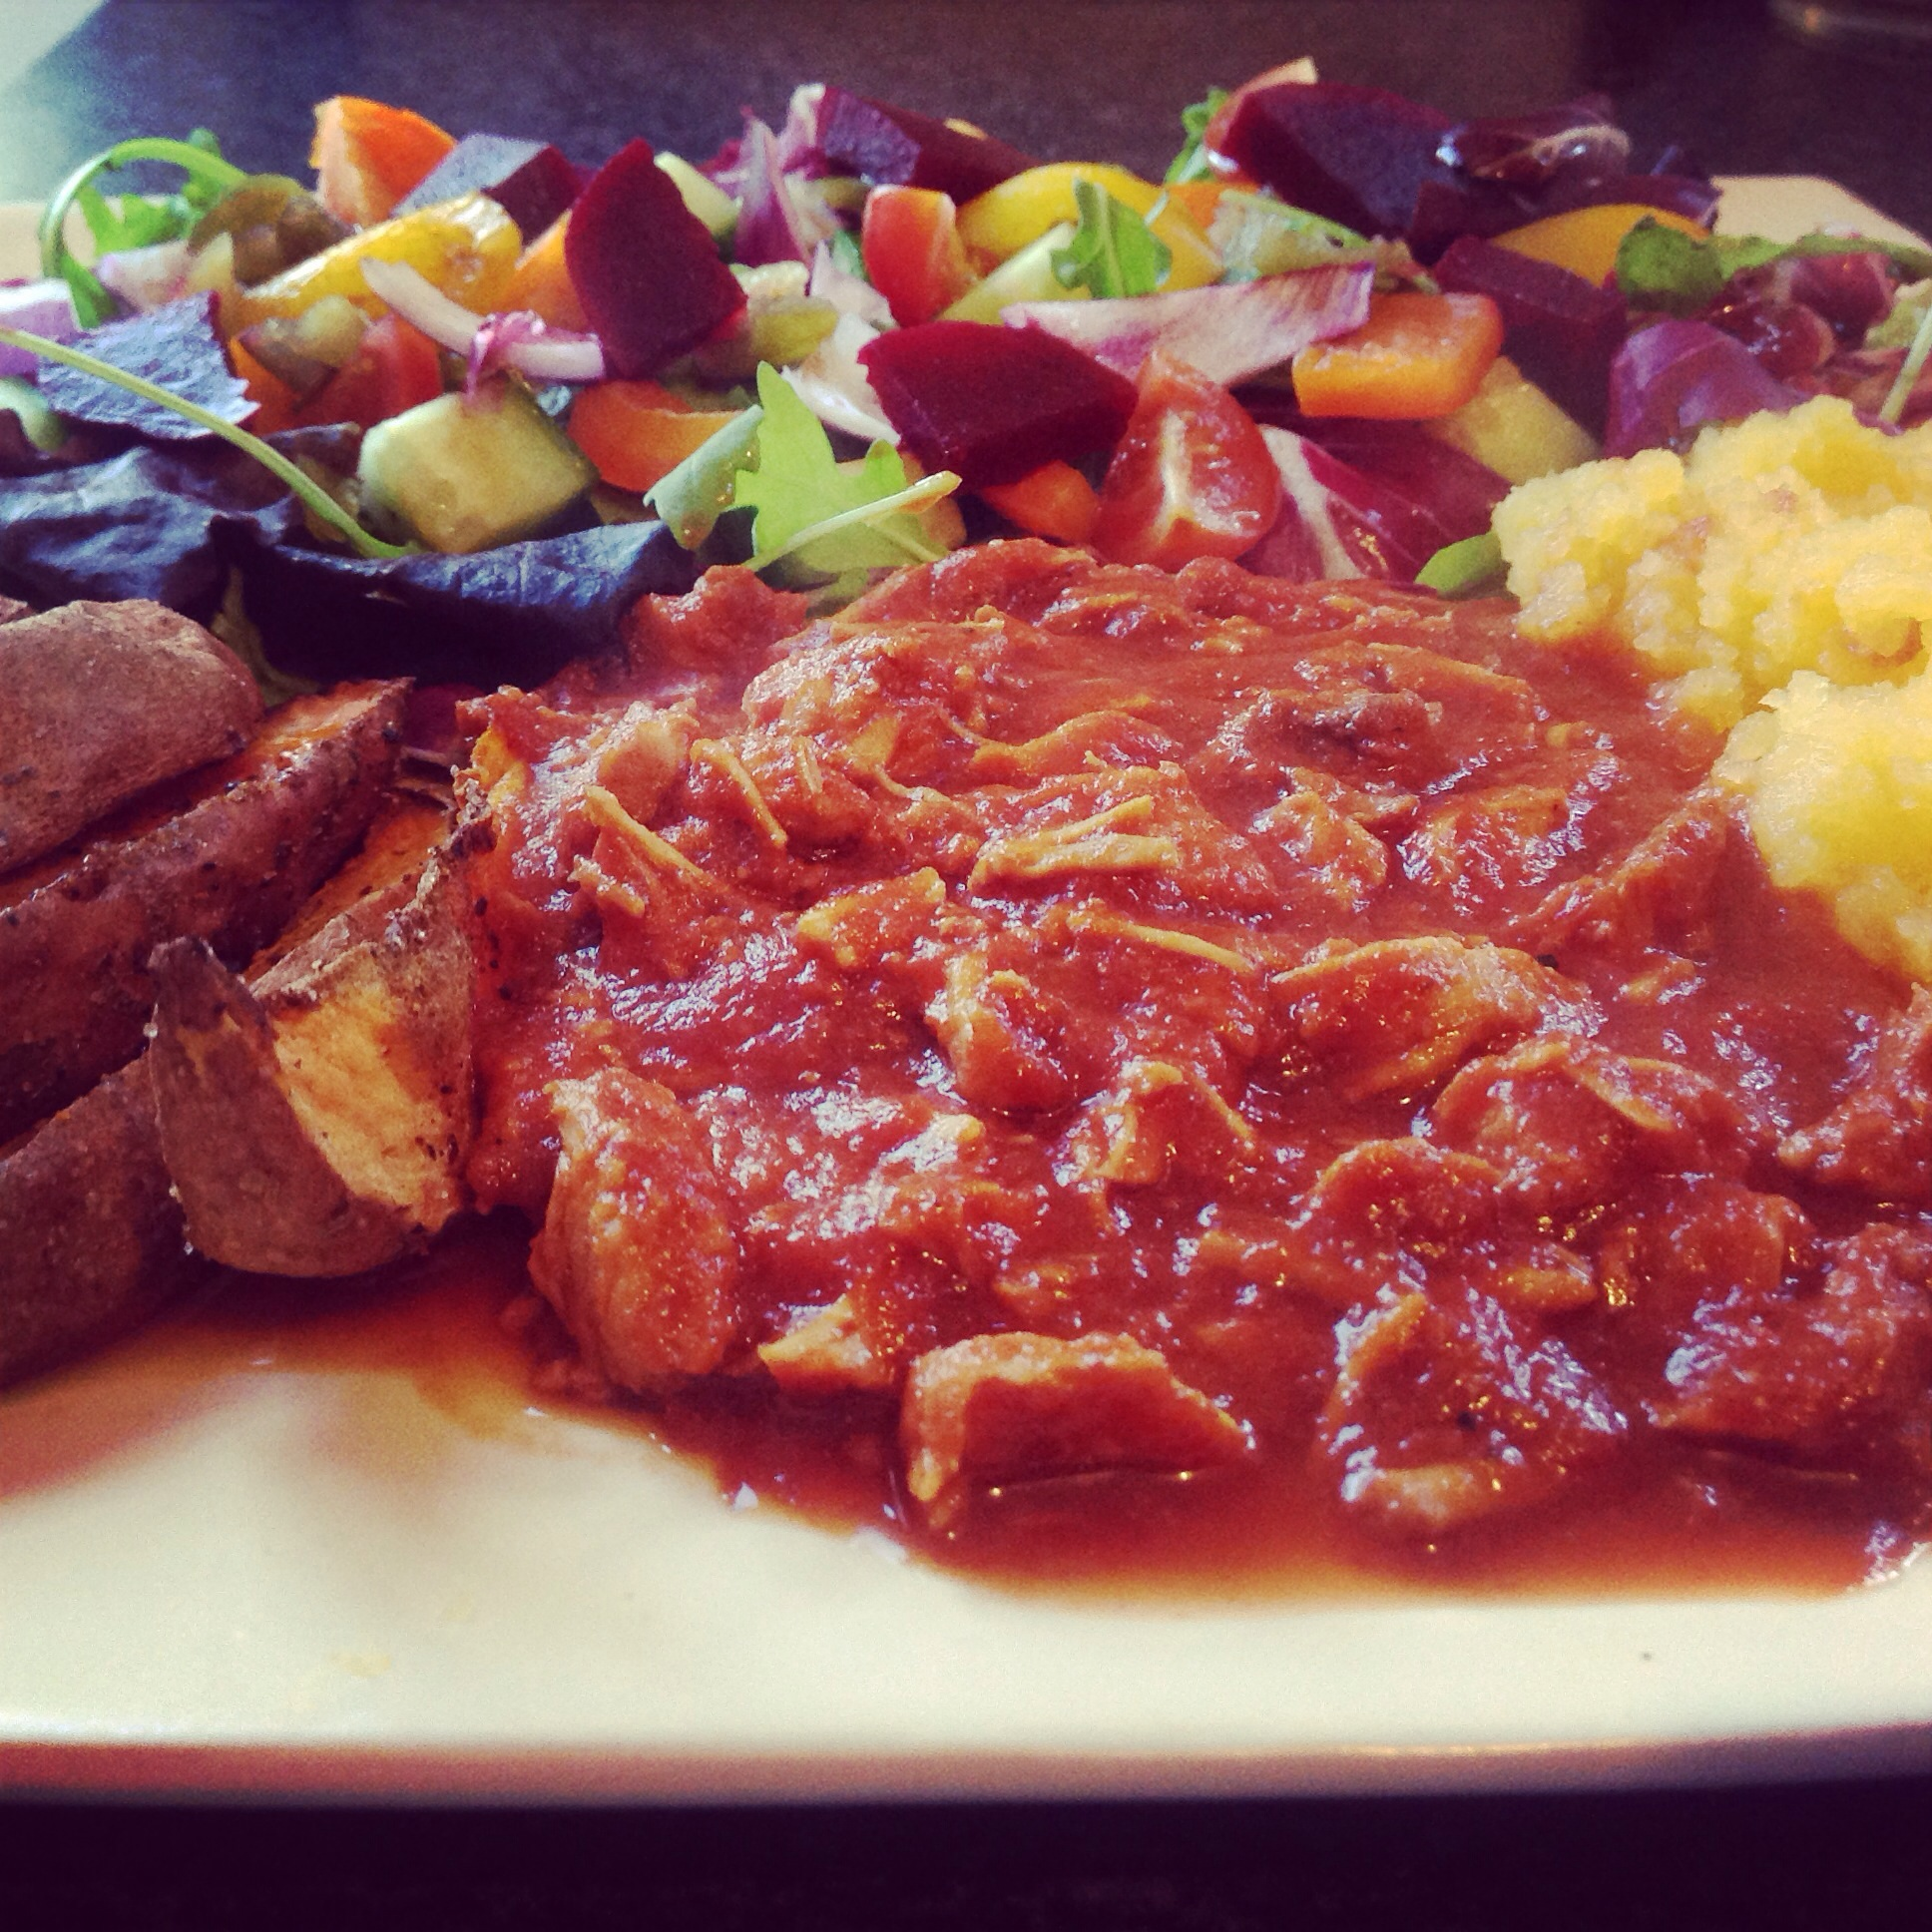 Pulled pork, sweet potato wedges and salad